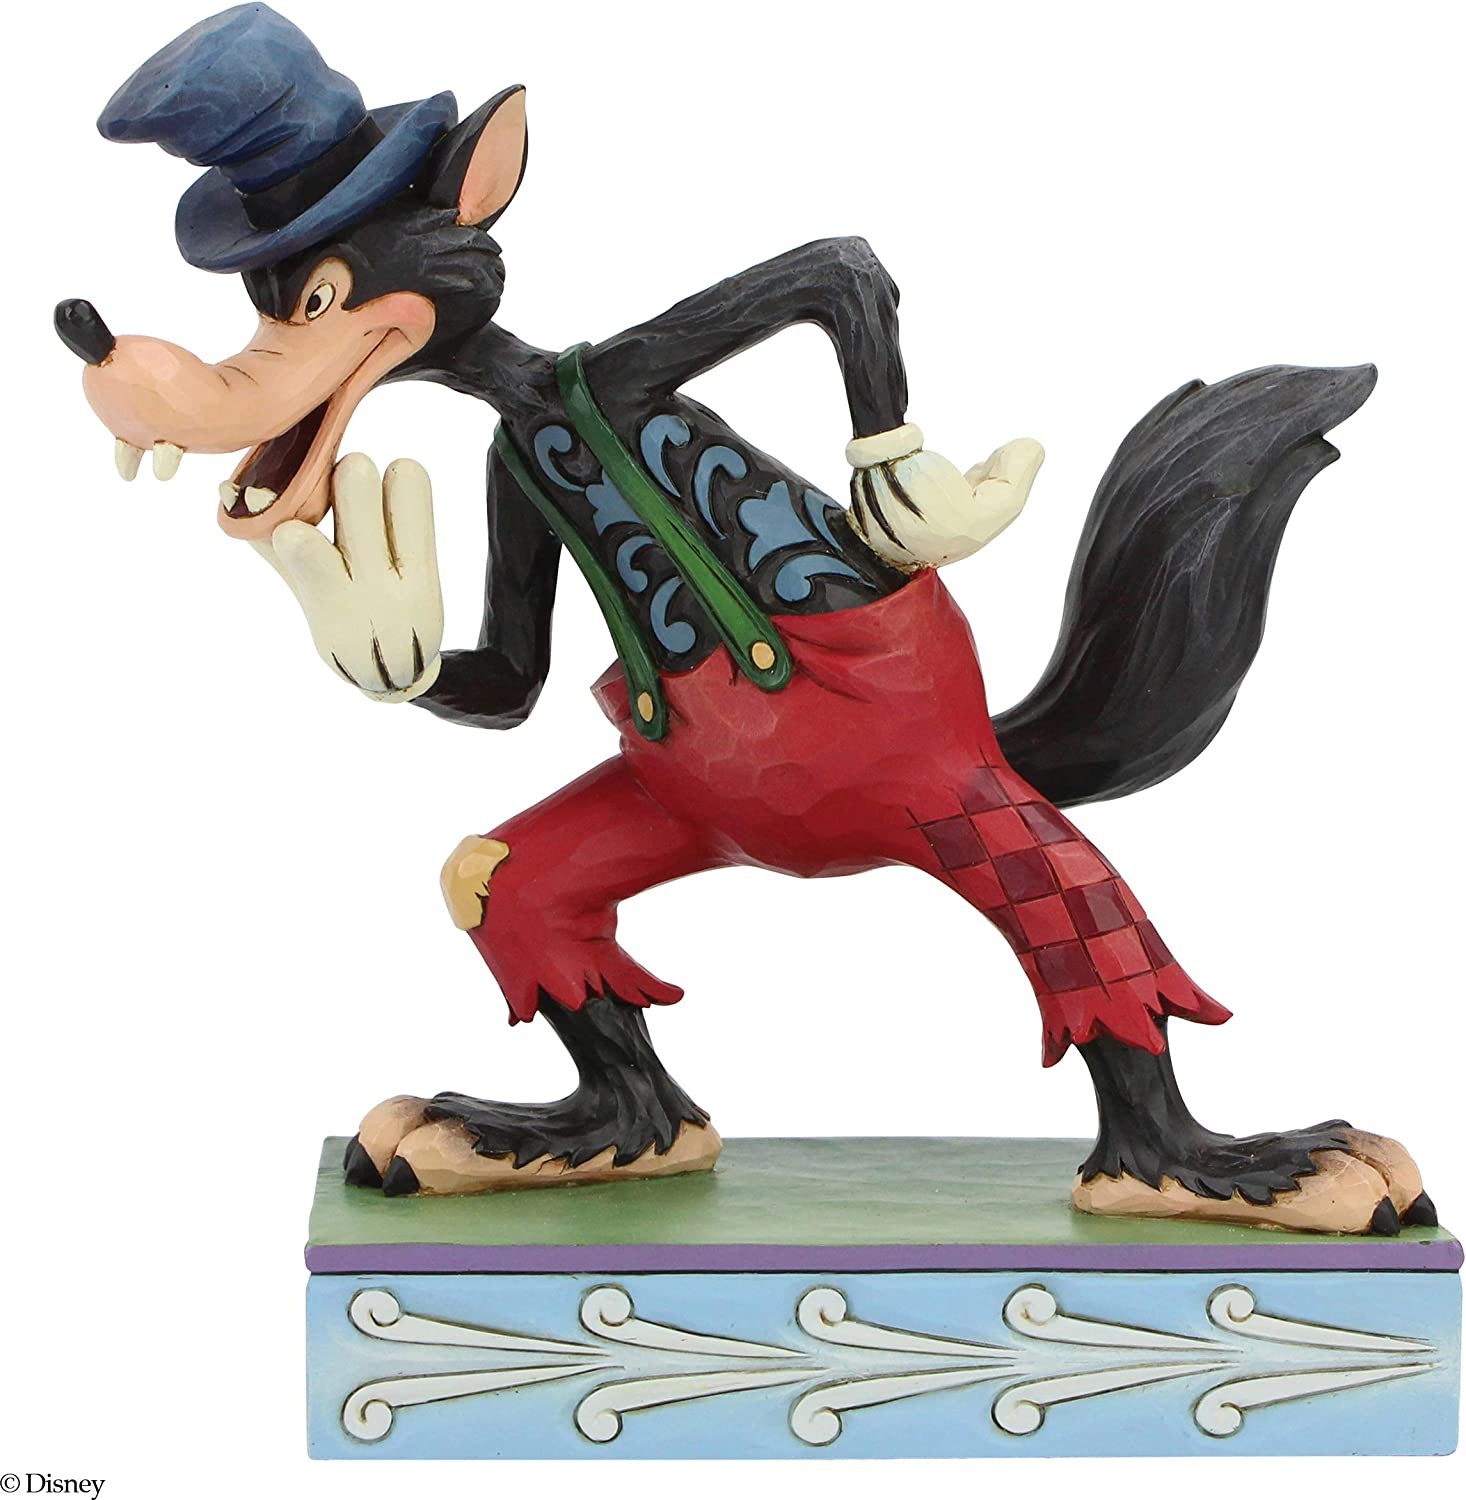 Enesco Disney Traditions by Jim Shore The Big Bad Wolf Figurine